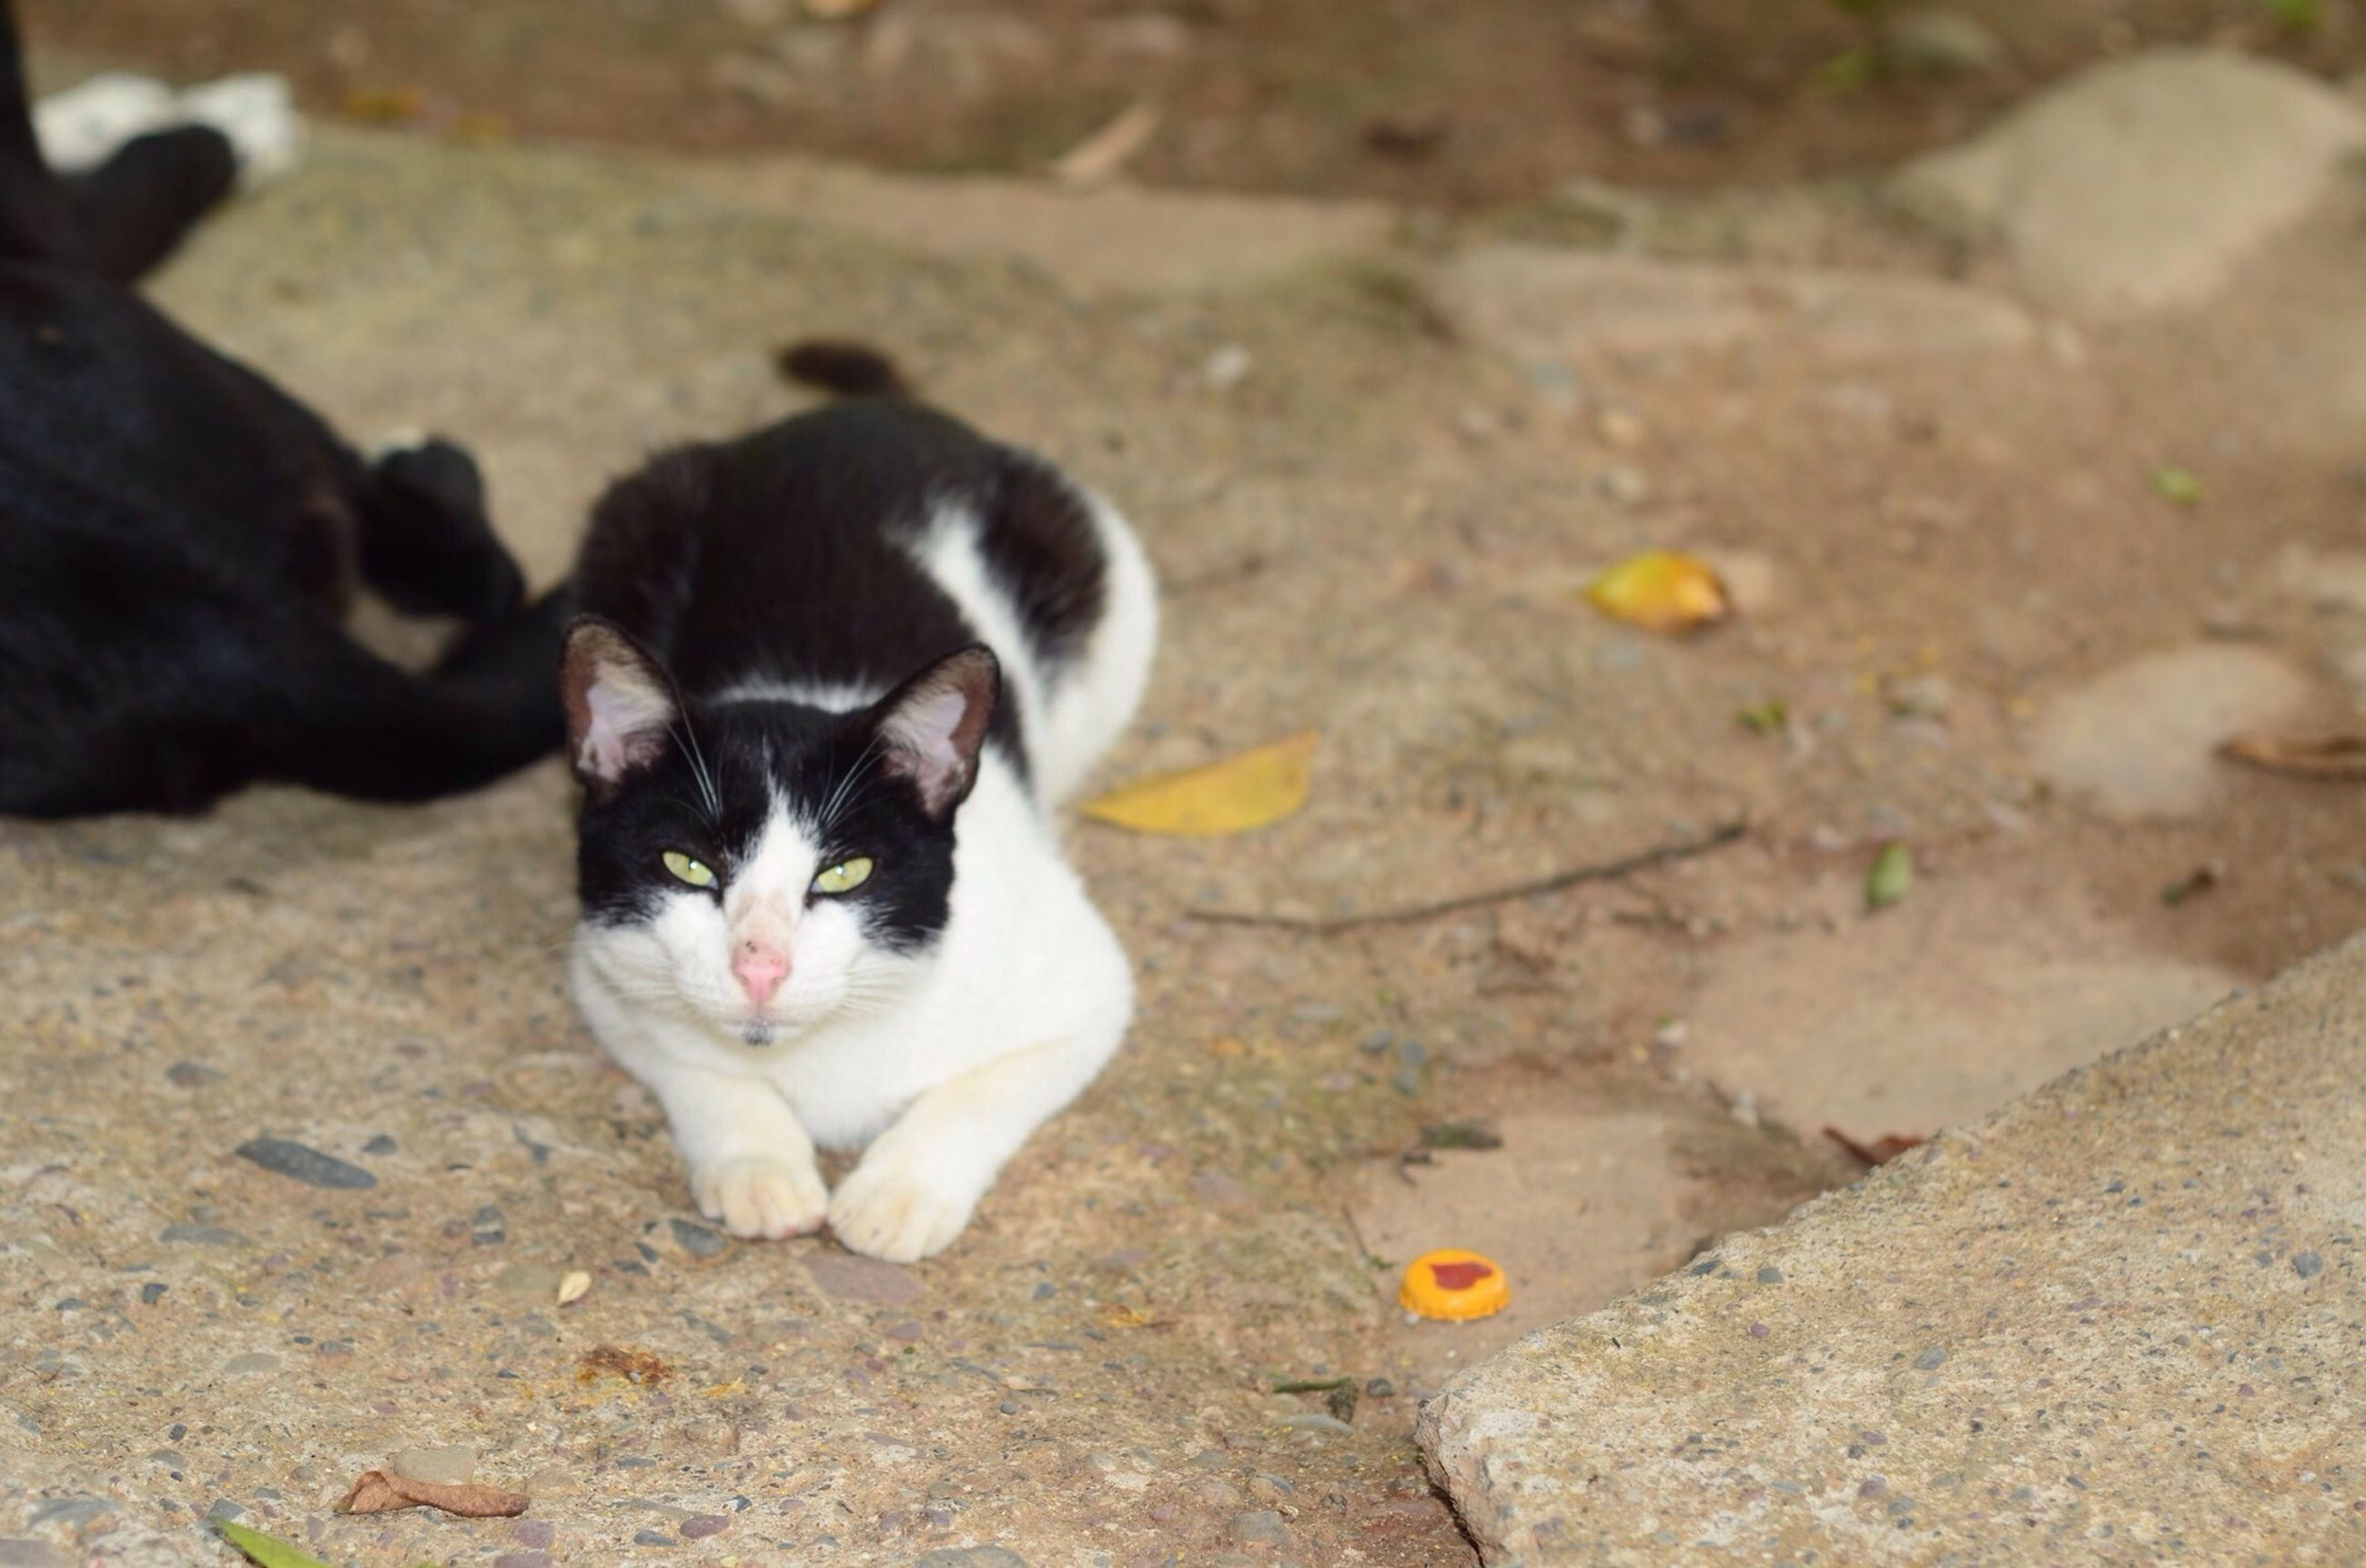 animal themes, domestic animals, pets, one animal, mammal, dog, looking at camera, portrait, domestic cat, focus on foreground, cat, sitting, high angle view, street, feline, relaxation, outdoors, cute, young animal, close-up